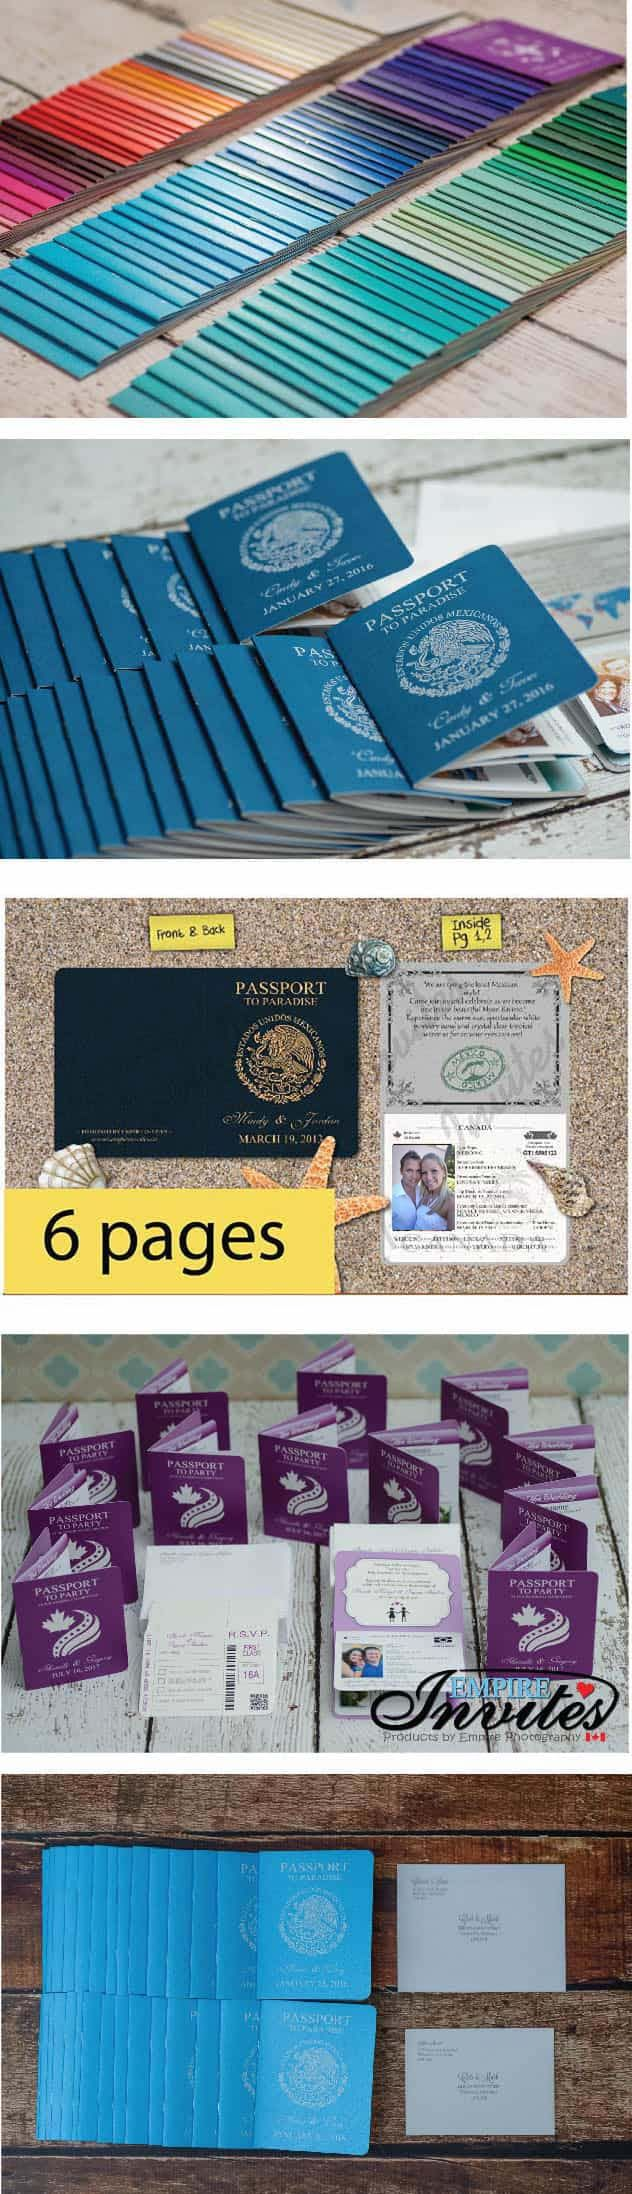 wedding cards with price in chennai%0A Custom Destination passport wedding invitations From Winnipeg  Canada   EMPIRE INVITES